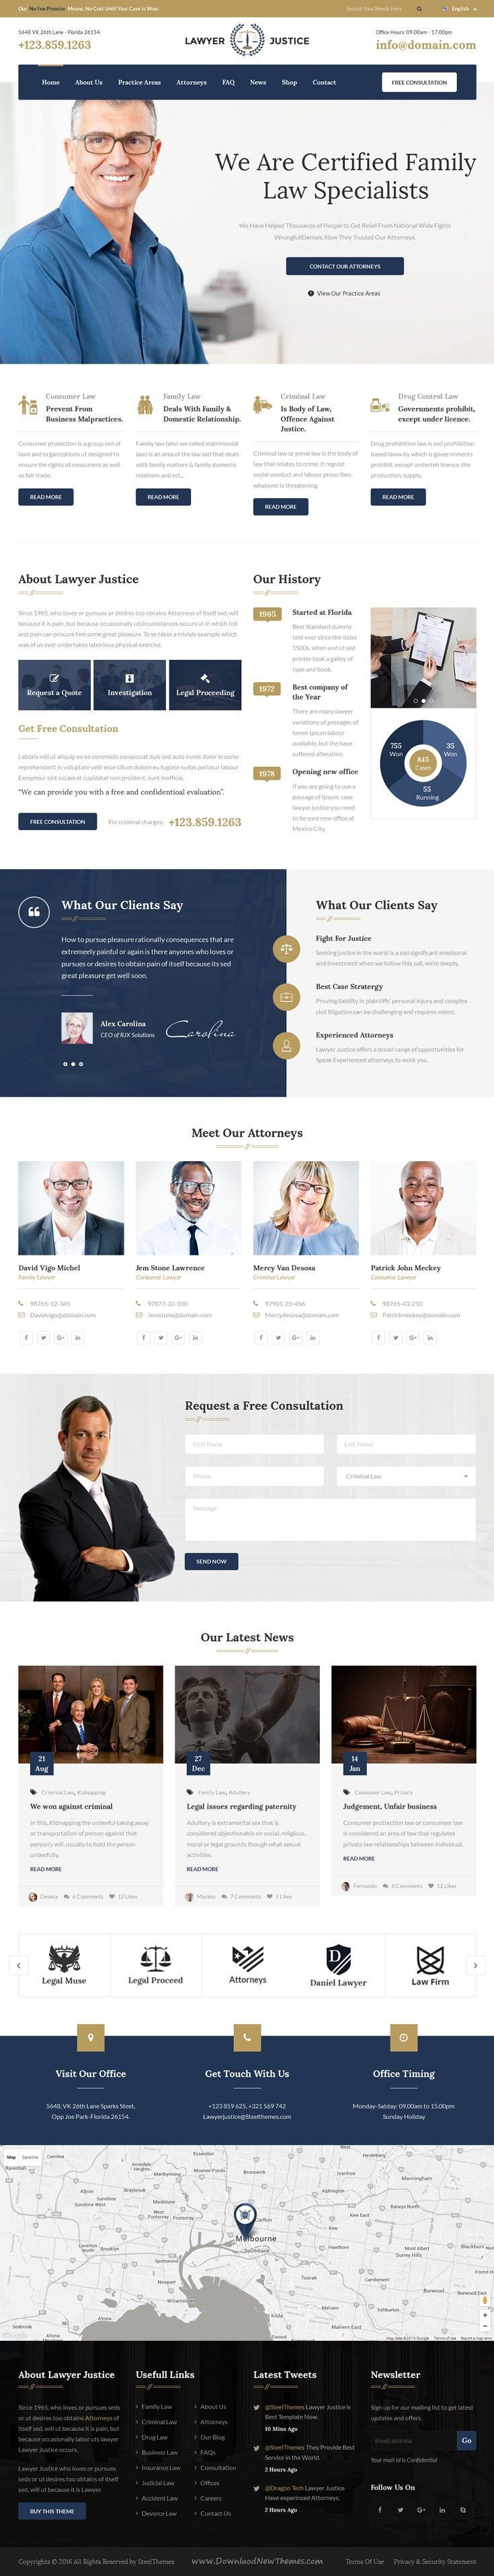 Lawyer Justice is beautiful Bootstrap template built for Legal Advisers, Lawyers, Attorneys, Counsels, Advocates and other legal and law related services website.  Chose WebsitesYES.com for your design needs.